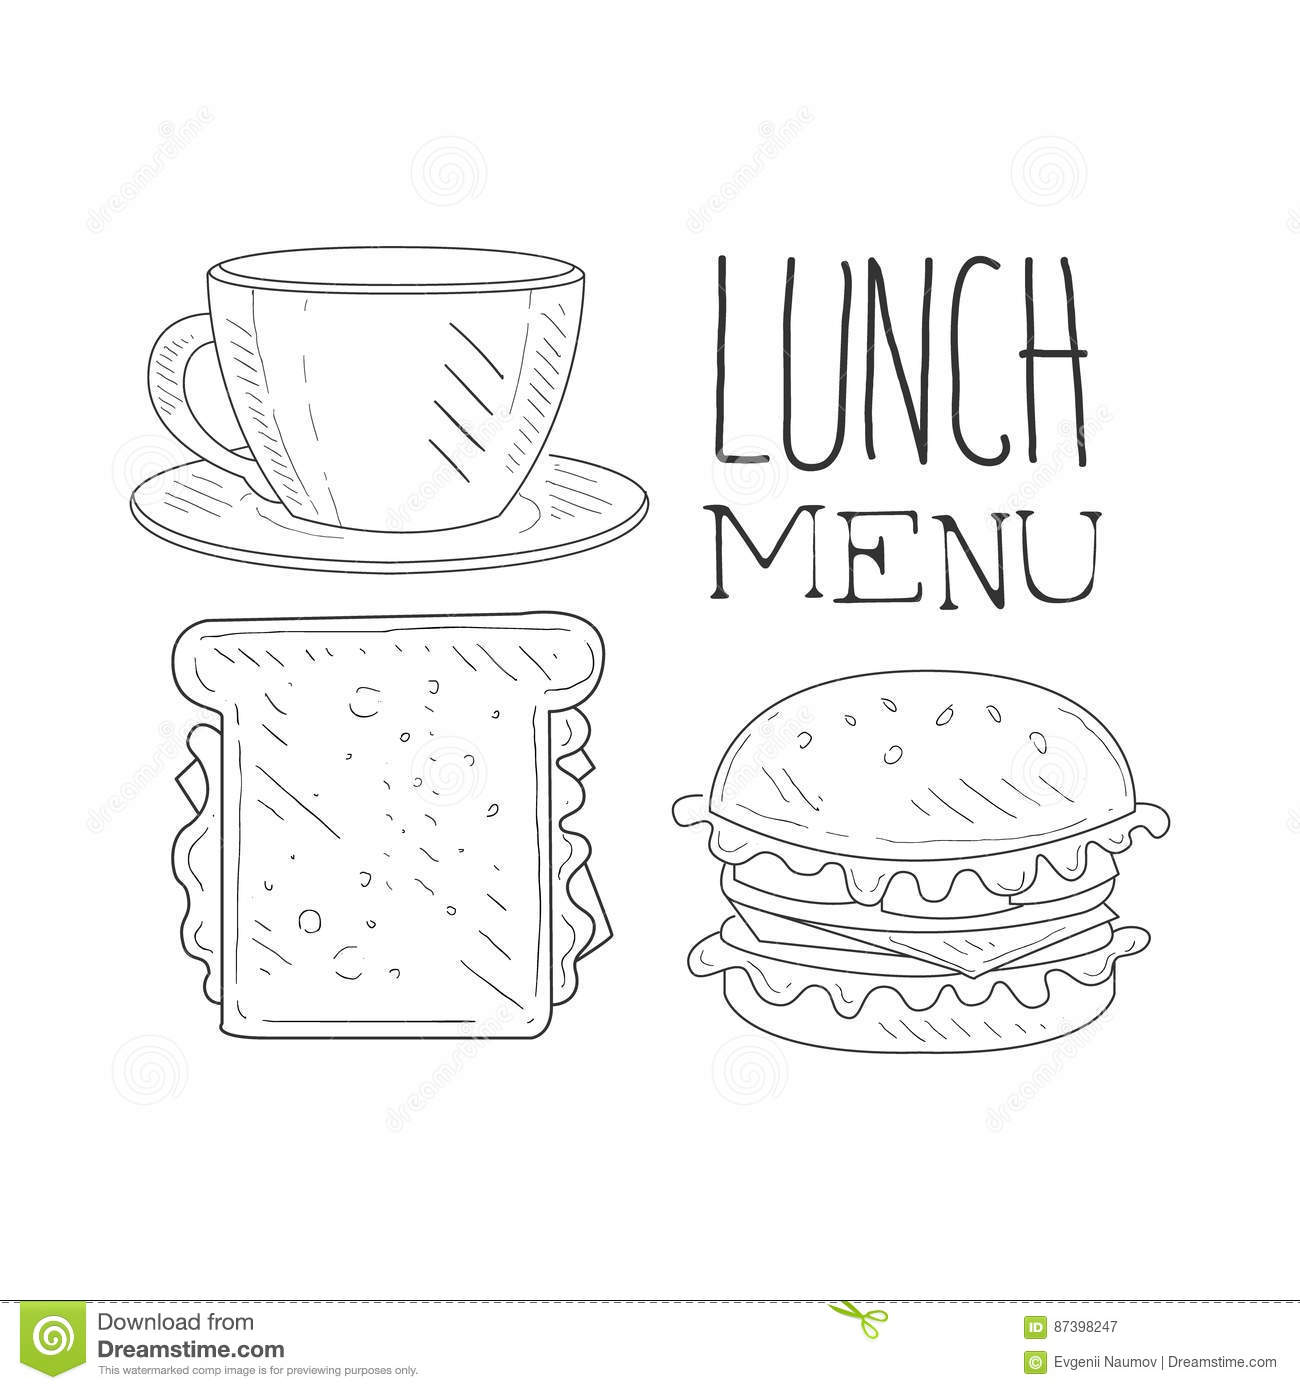 Cafe Lunch Menu Promo Sign In Sketch Style With Sandwich